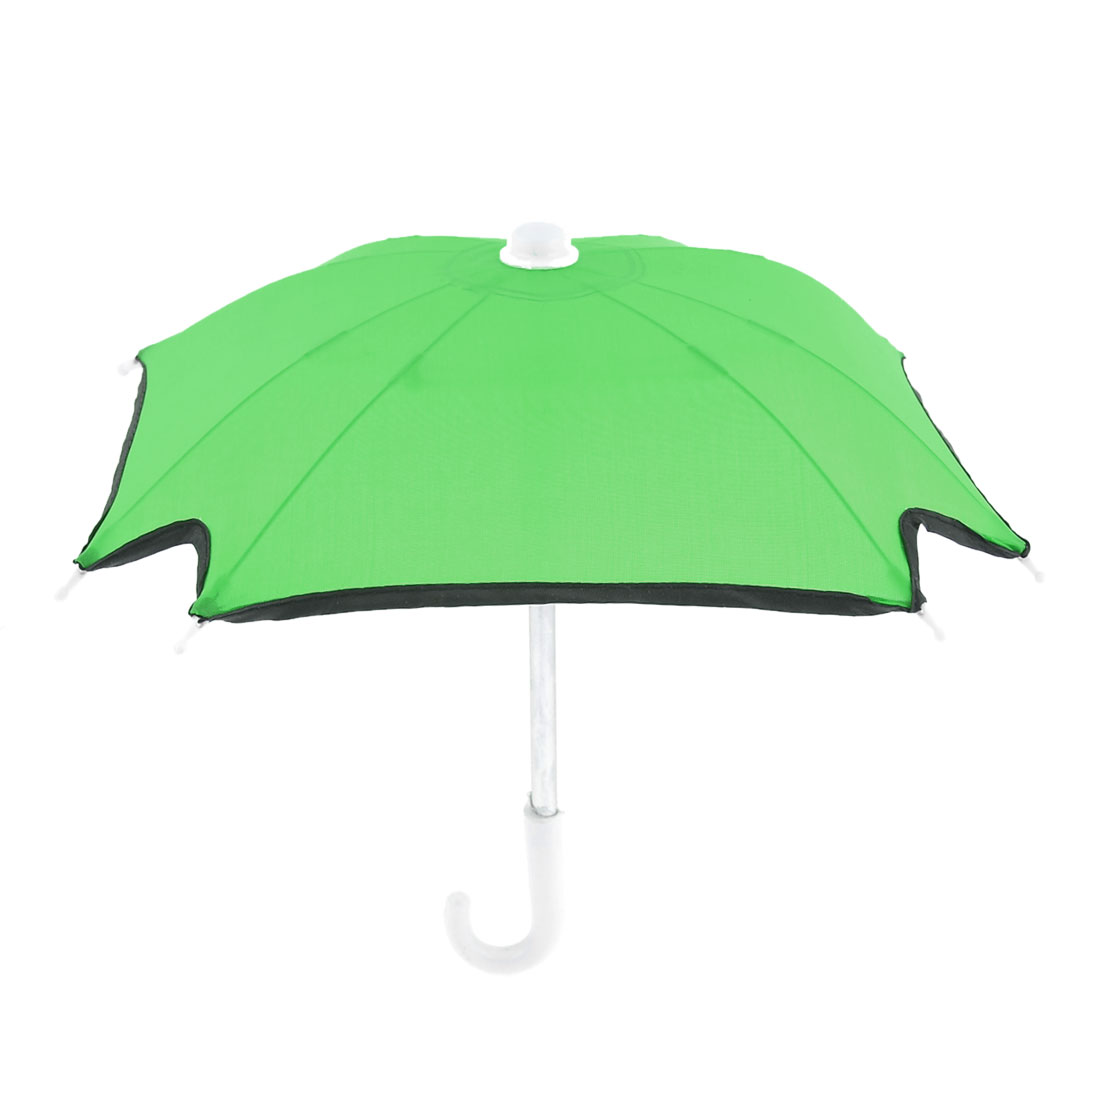 Outdoor Children 8 Metal Ribs Mini Green Folding Umbrella Toy